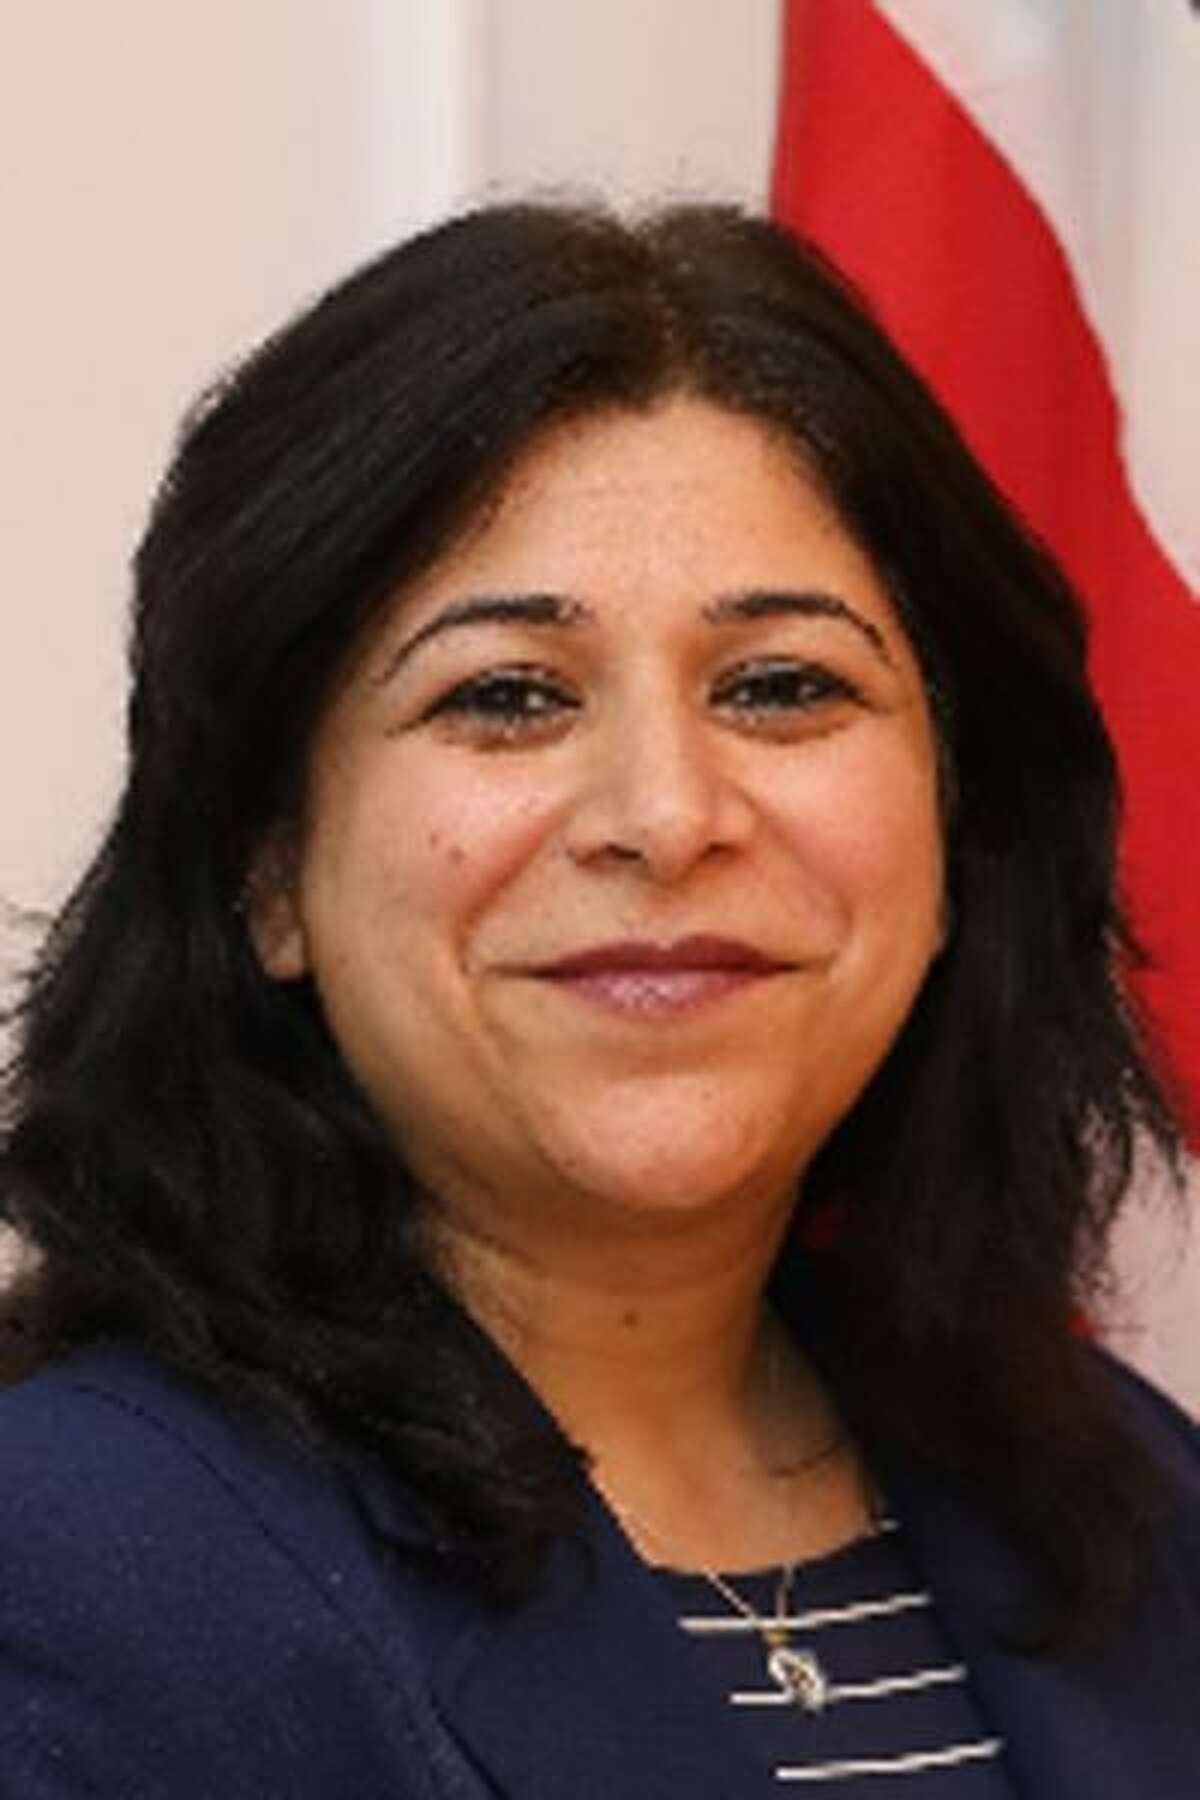 Sujata Gadkar-Wilcox, democratic candidate in the 123rd house district, 2018.